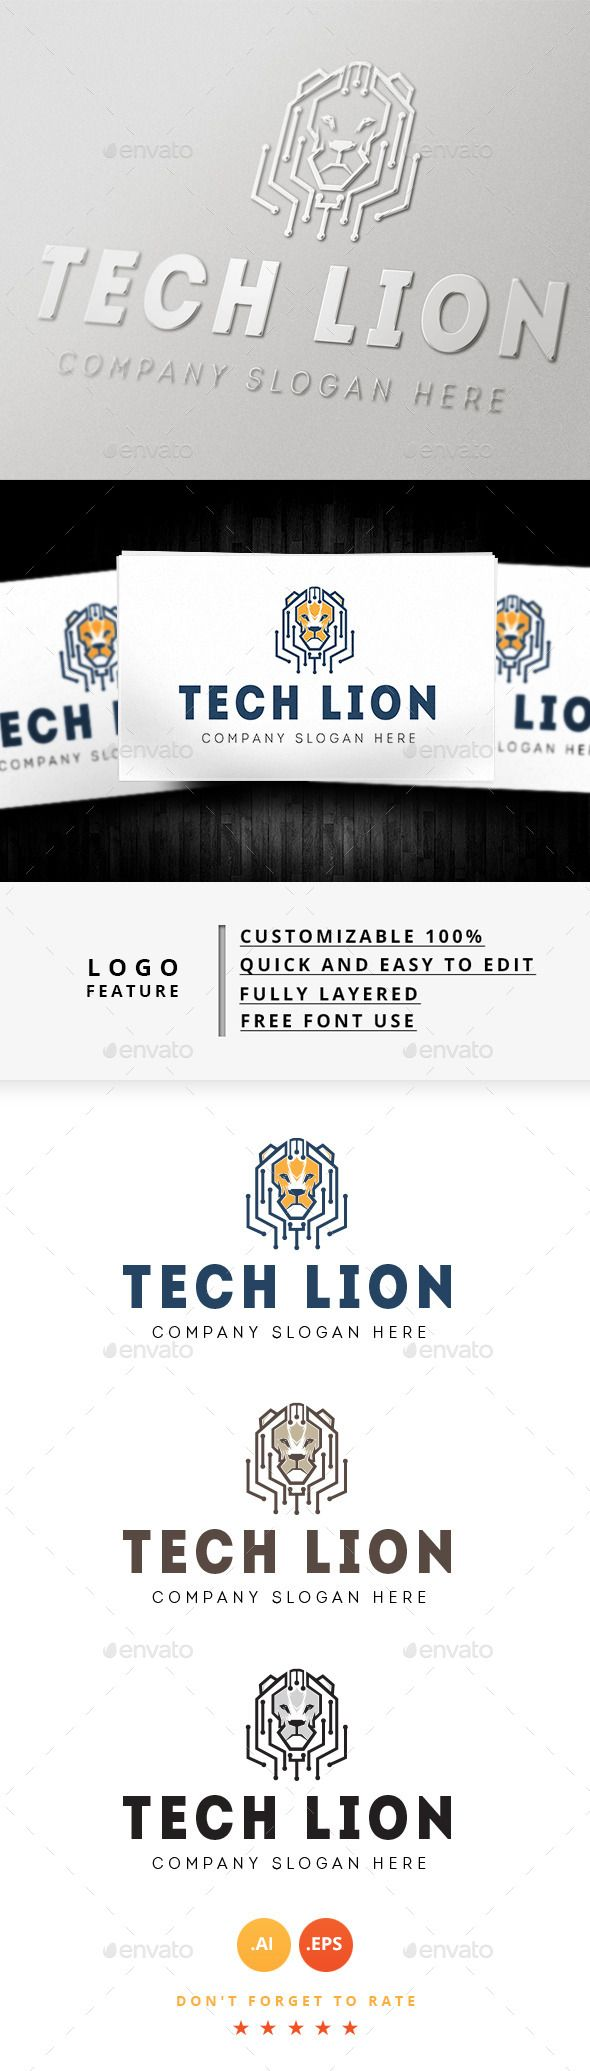 Tech Lion Logo — Vector EPS #brand logo #logo creative • Available here → https://graphicriver.net/item/tech-lion-logo/8932626?ref=pxcr